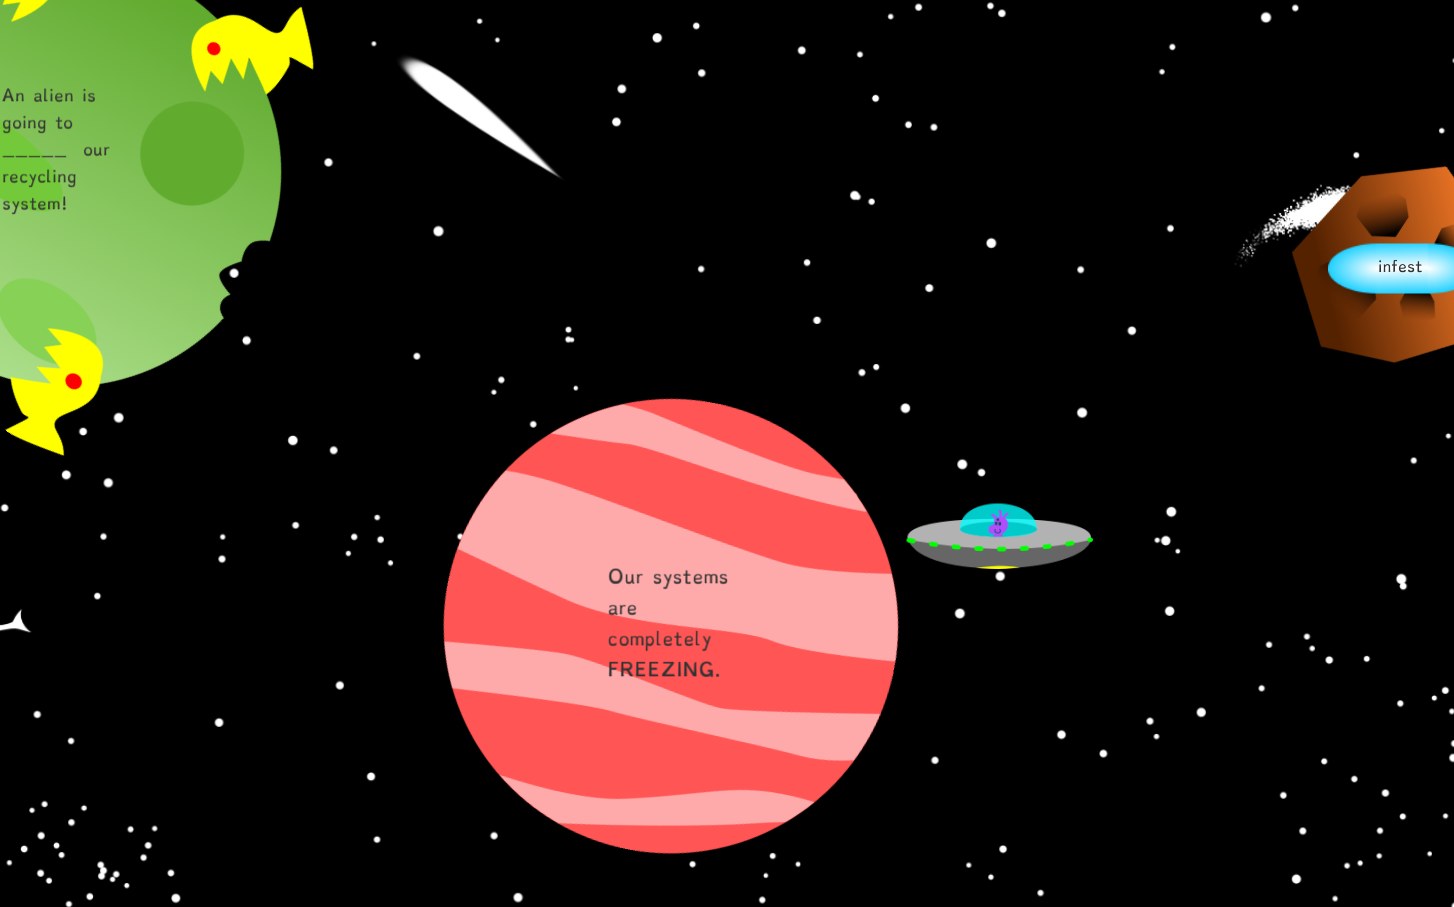 asteroid words game 2